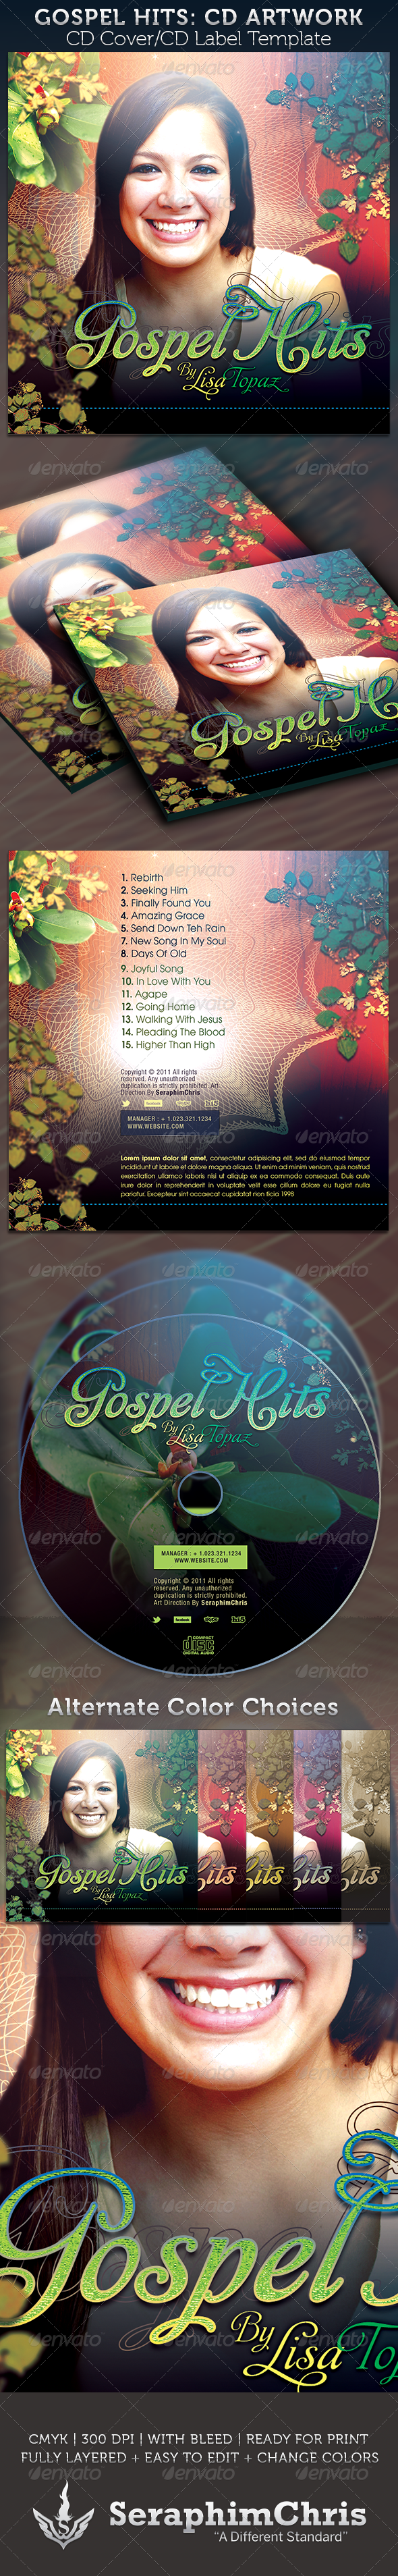 Gospel Hits CD Cover Artwork Template - CD & DVD artwork Print Templates